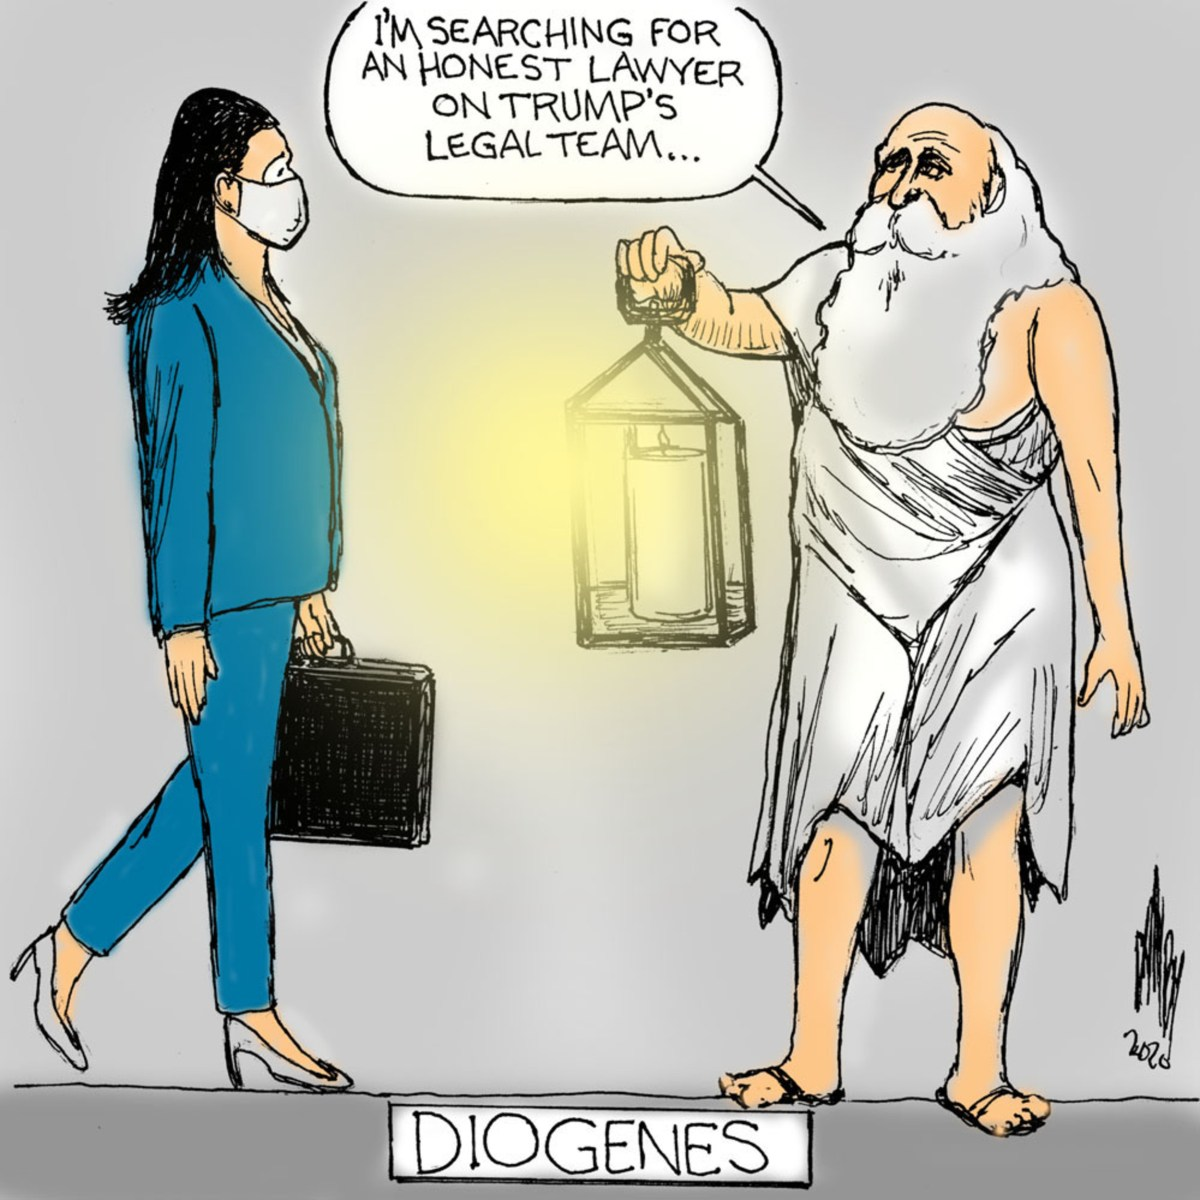 Diogenes searching for an honest lawyer on Donald Trump's legal team.